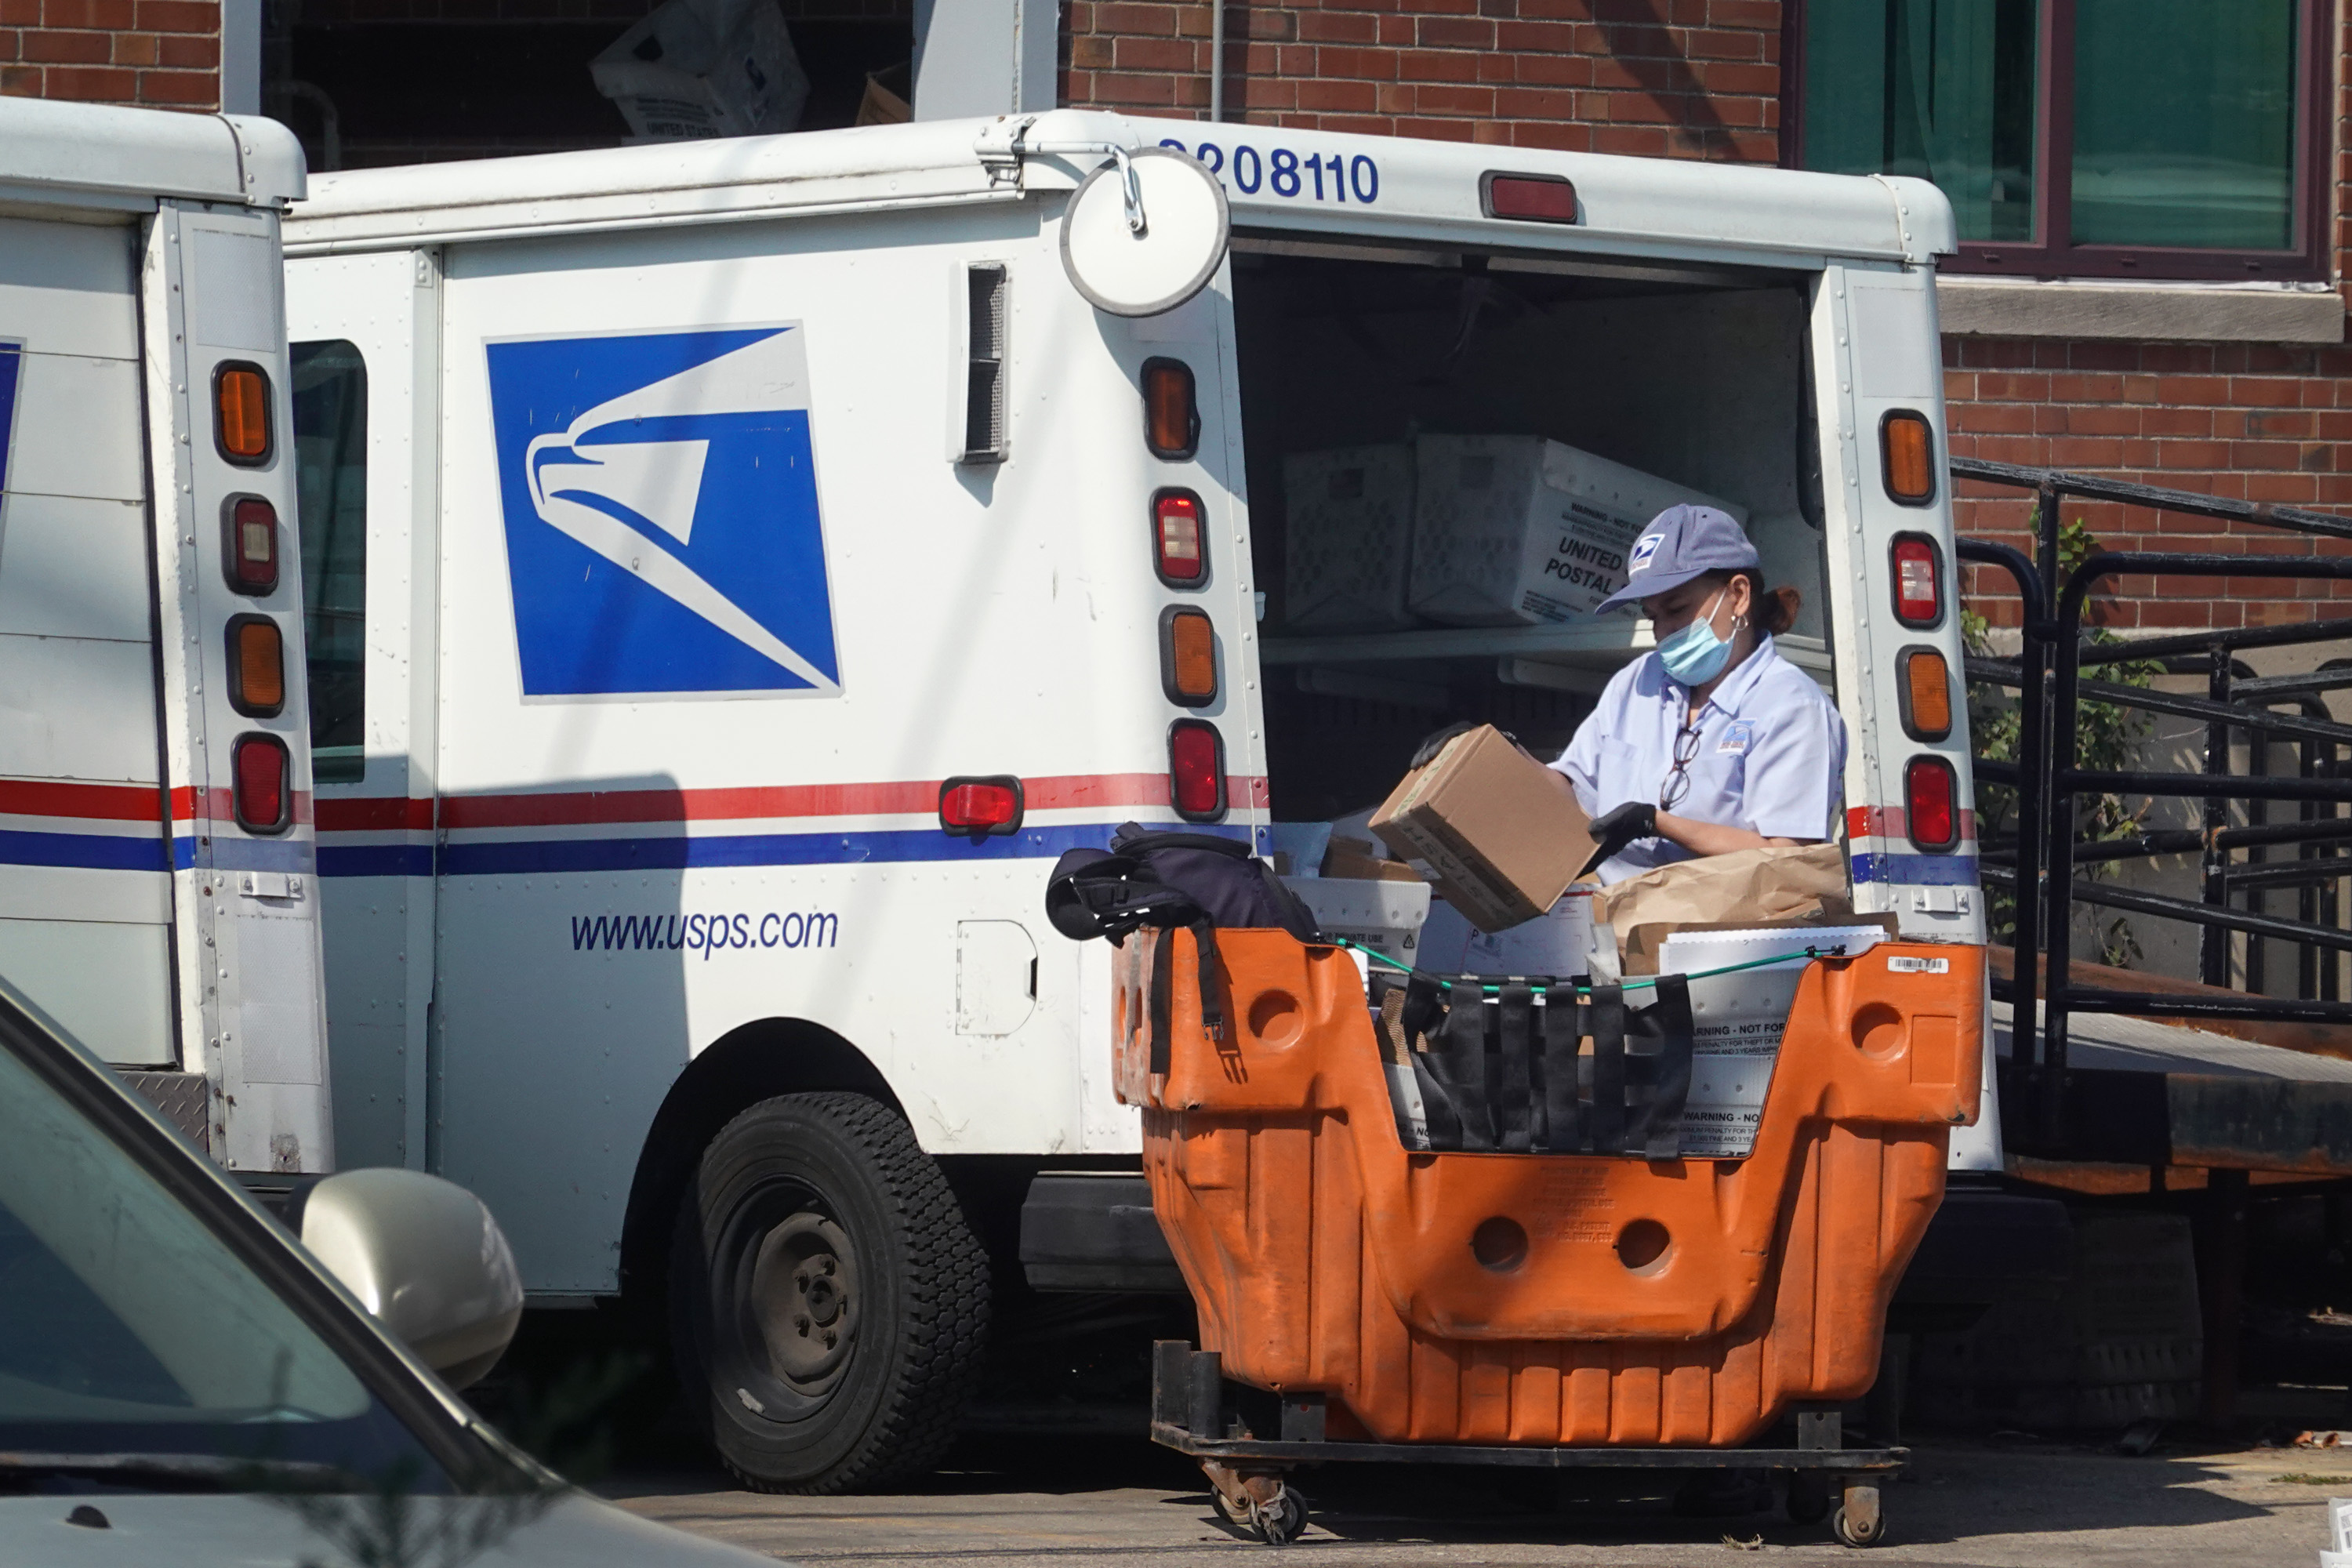 A postal worker loads a delivery truck on Oct. 1, 2021 in Chicago.